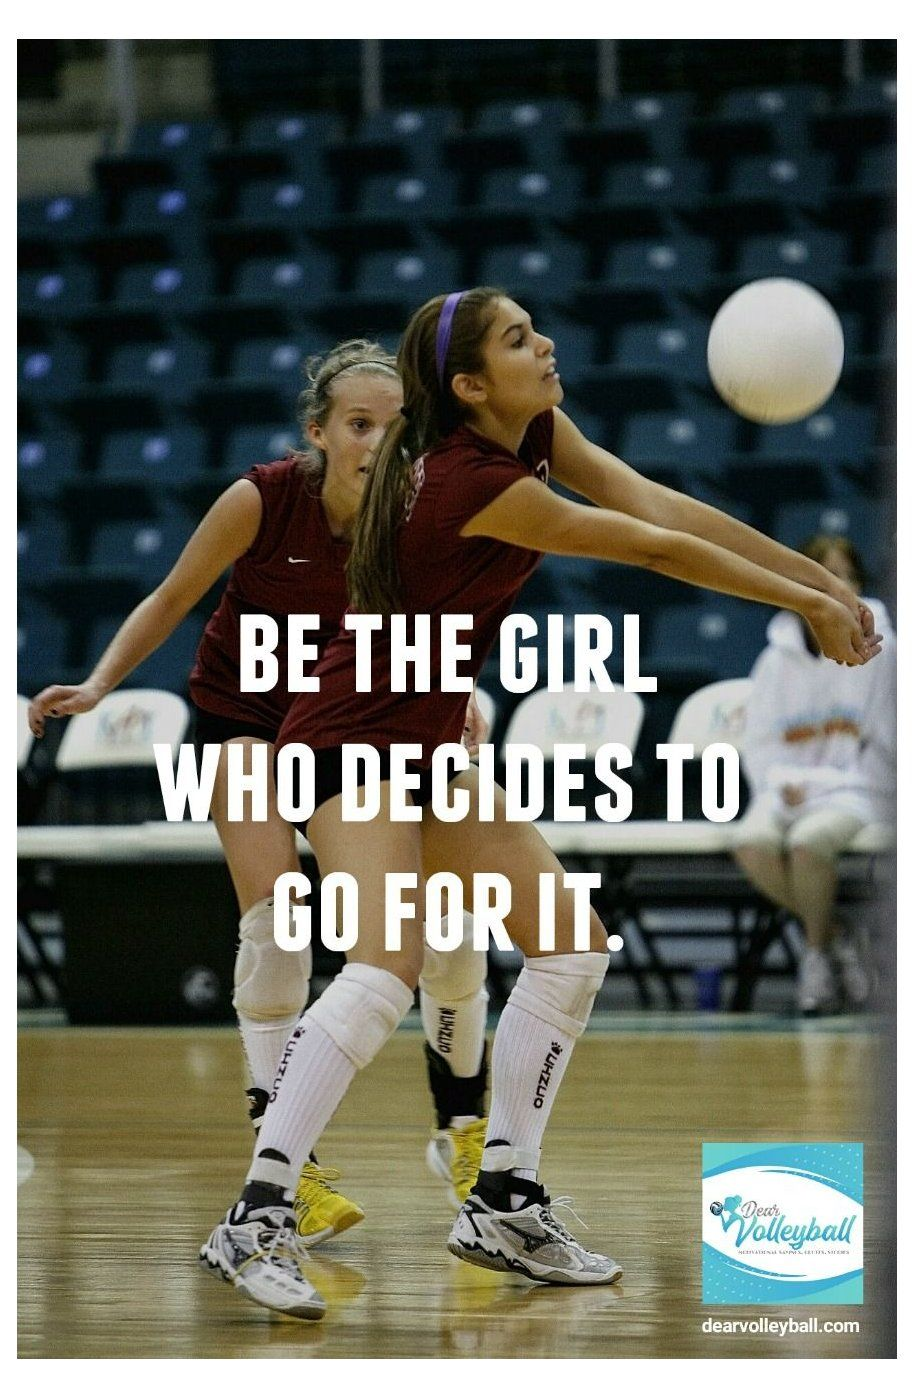 54 Short Inspirational Quotes For A Players Long Term Inspiration Inspirational Quote In 2020 Motivational Volleyball Quotes Volleyball Inspiration Volleyball Quotes